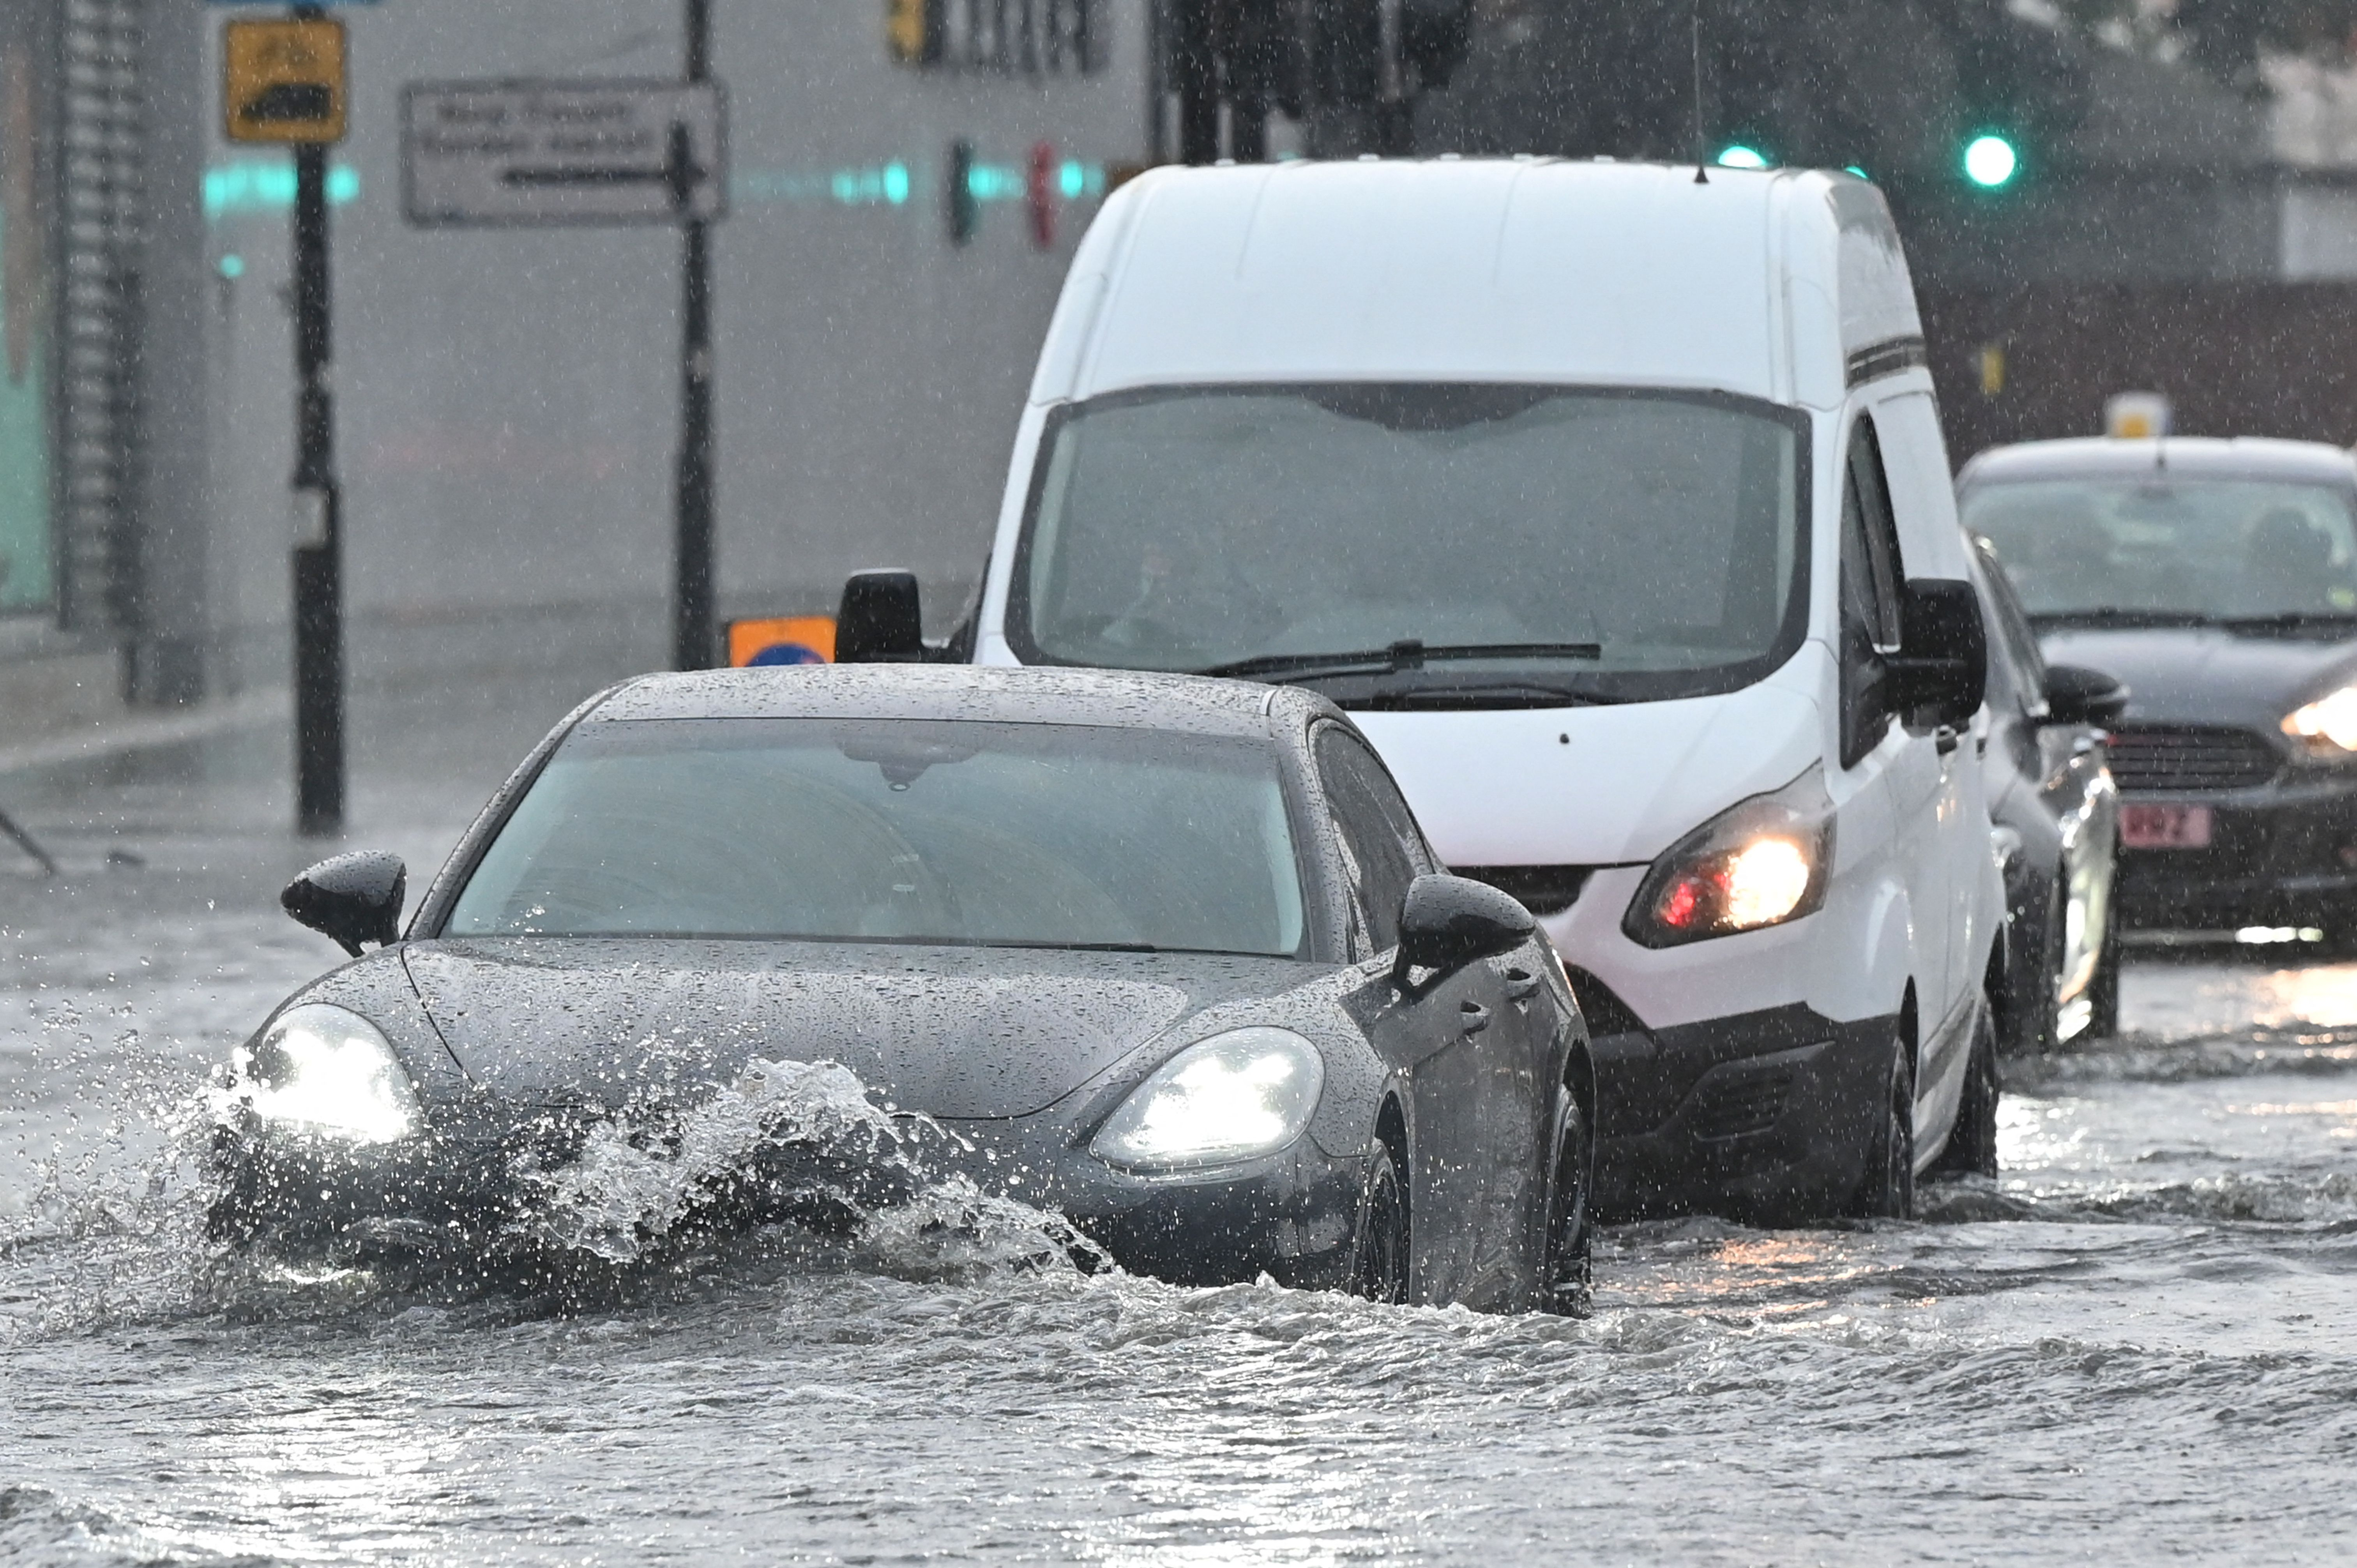 <p>Cars drive through deep water on a flooded road in The Nine Elms district of London on July 25, 2021 during heavy rain. - Buses and cars were left stranded when roads across London flooded on Sunday, as repeated thunderstorms battered the British capital. (Photo by JUSTIN TALLIS / AFP) (Photo by JUSTIN TALLIS/AFP via Getty Images)</p>